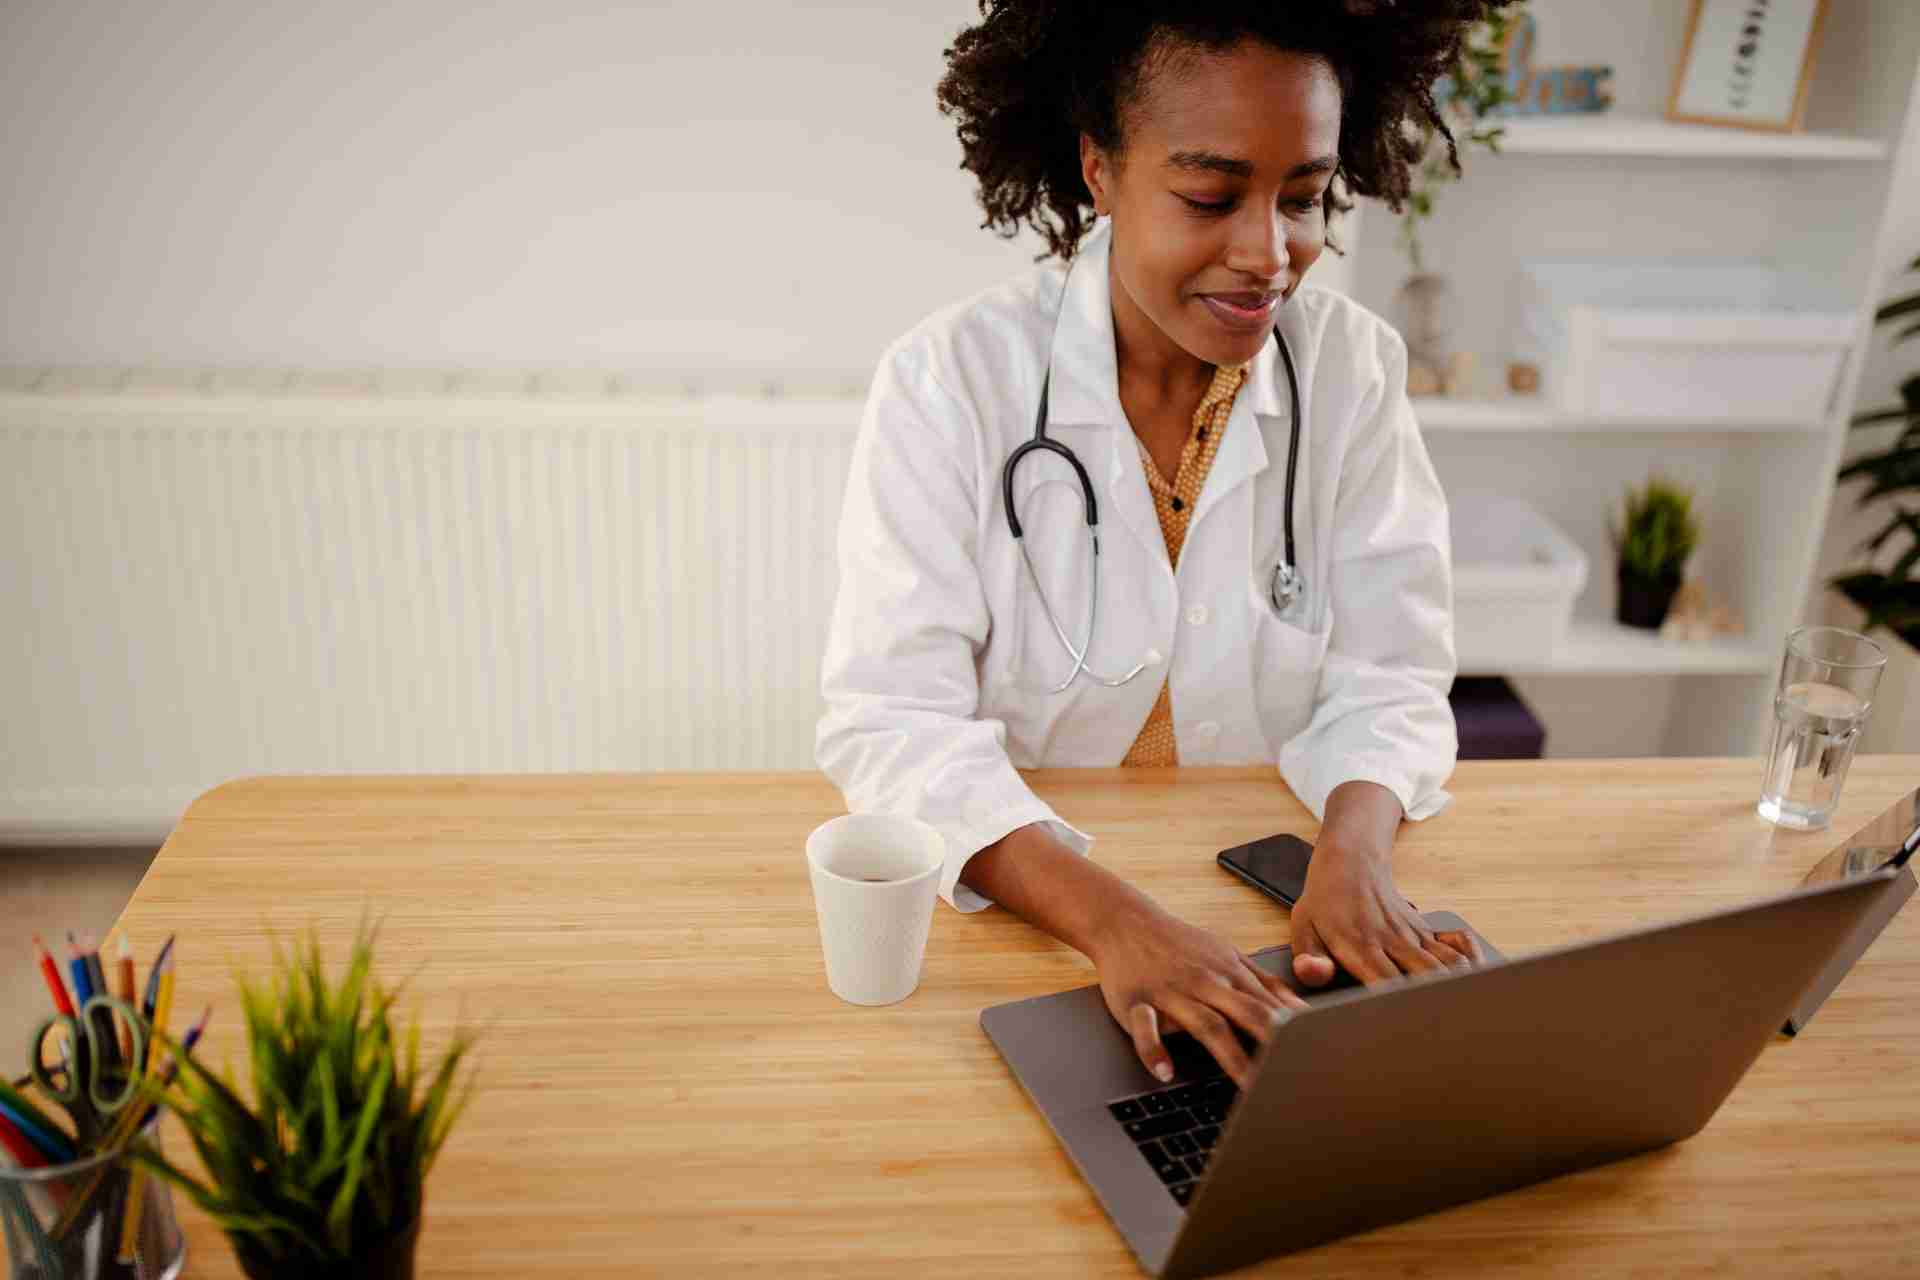 Medical professional working remotely from Airbnb